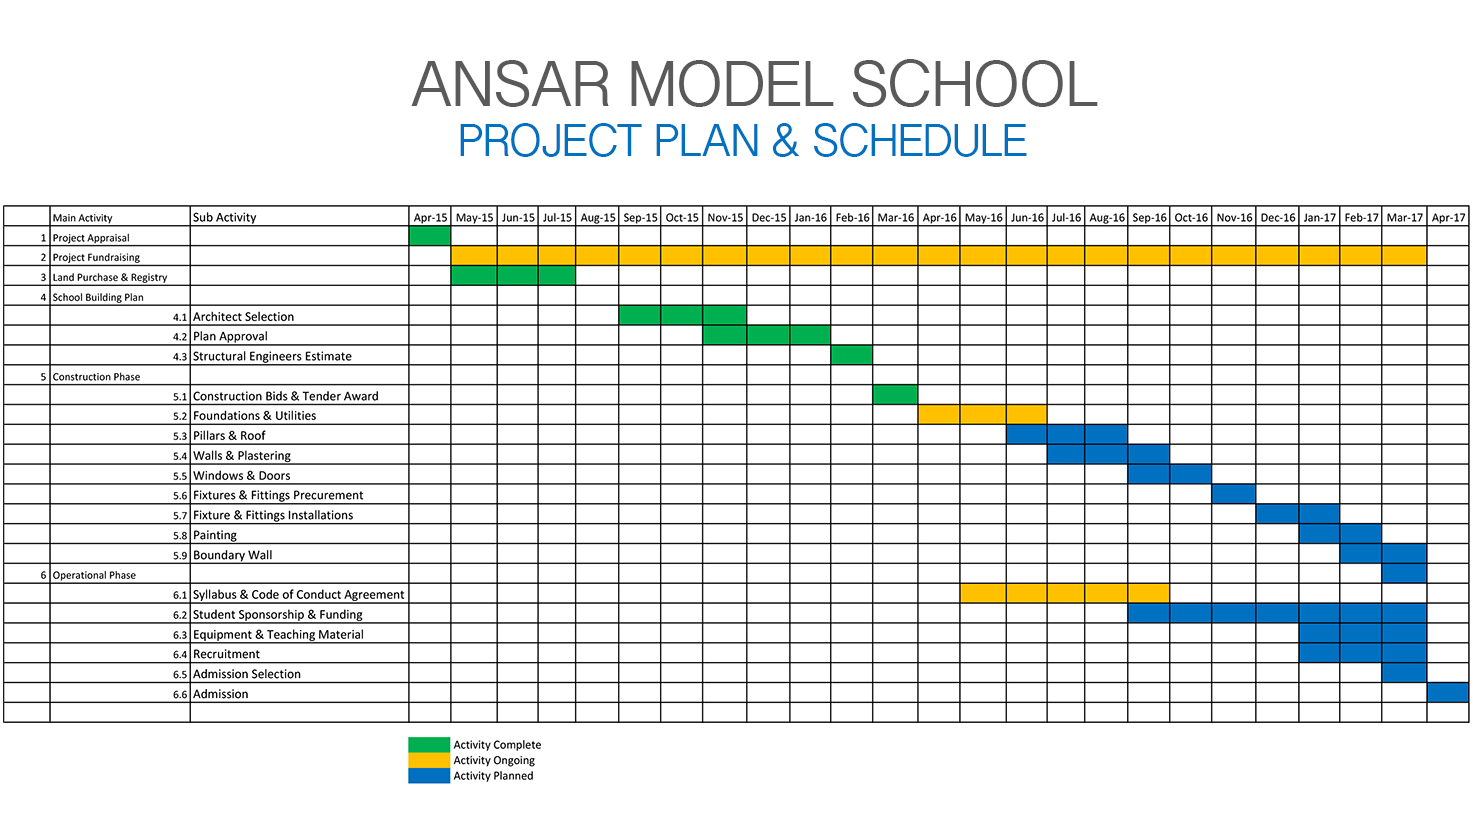 ansar model school